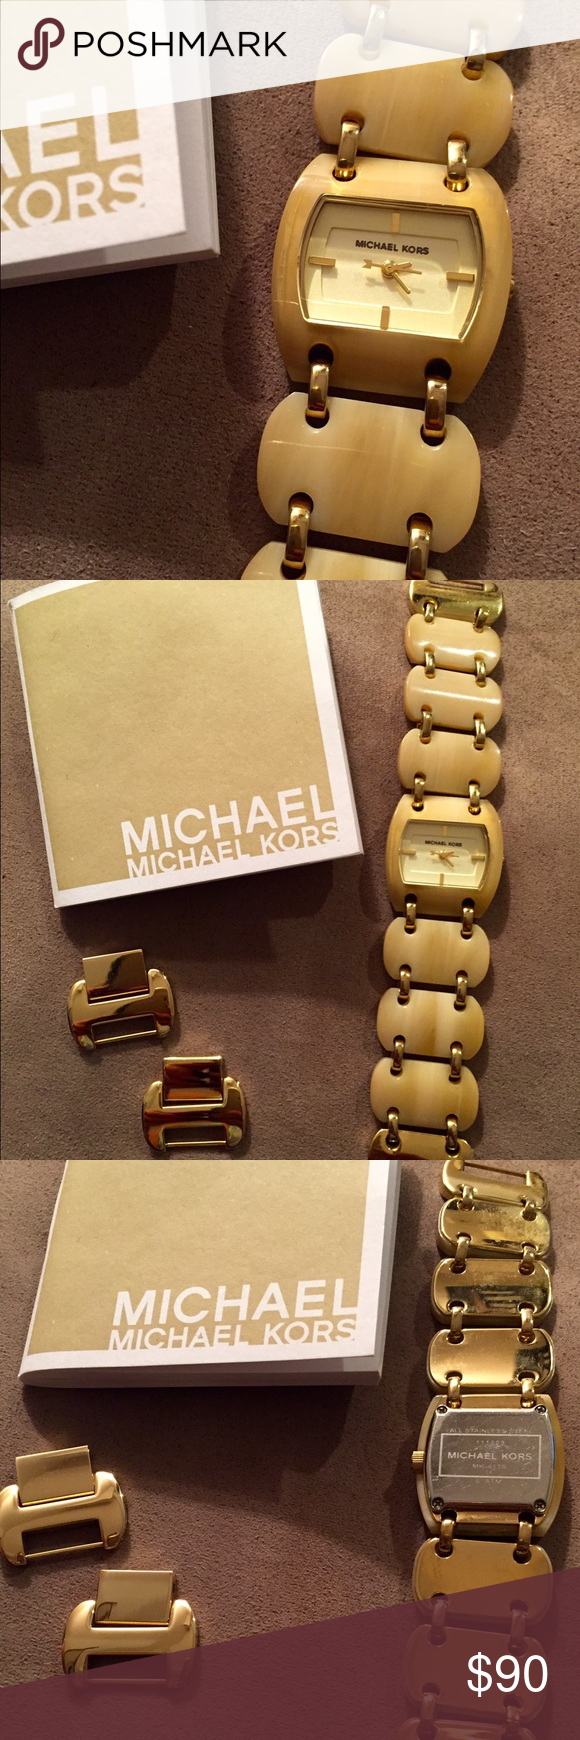 Michael Kors watch Original Michael Kors ceramic watch, almost new, I used it less than 5 times. Michael Kors Accessories Watches